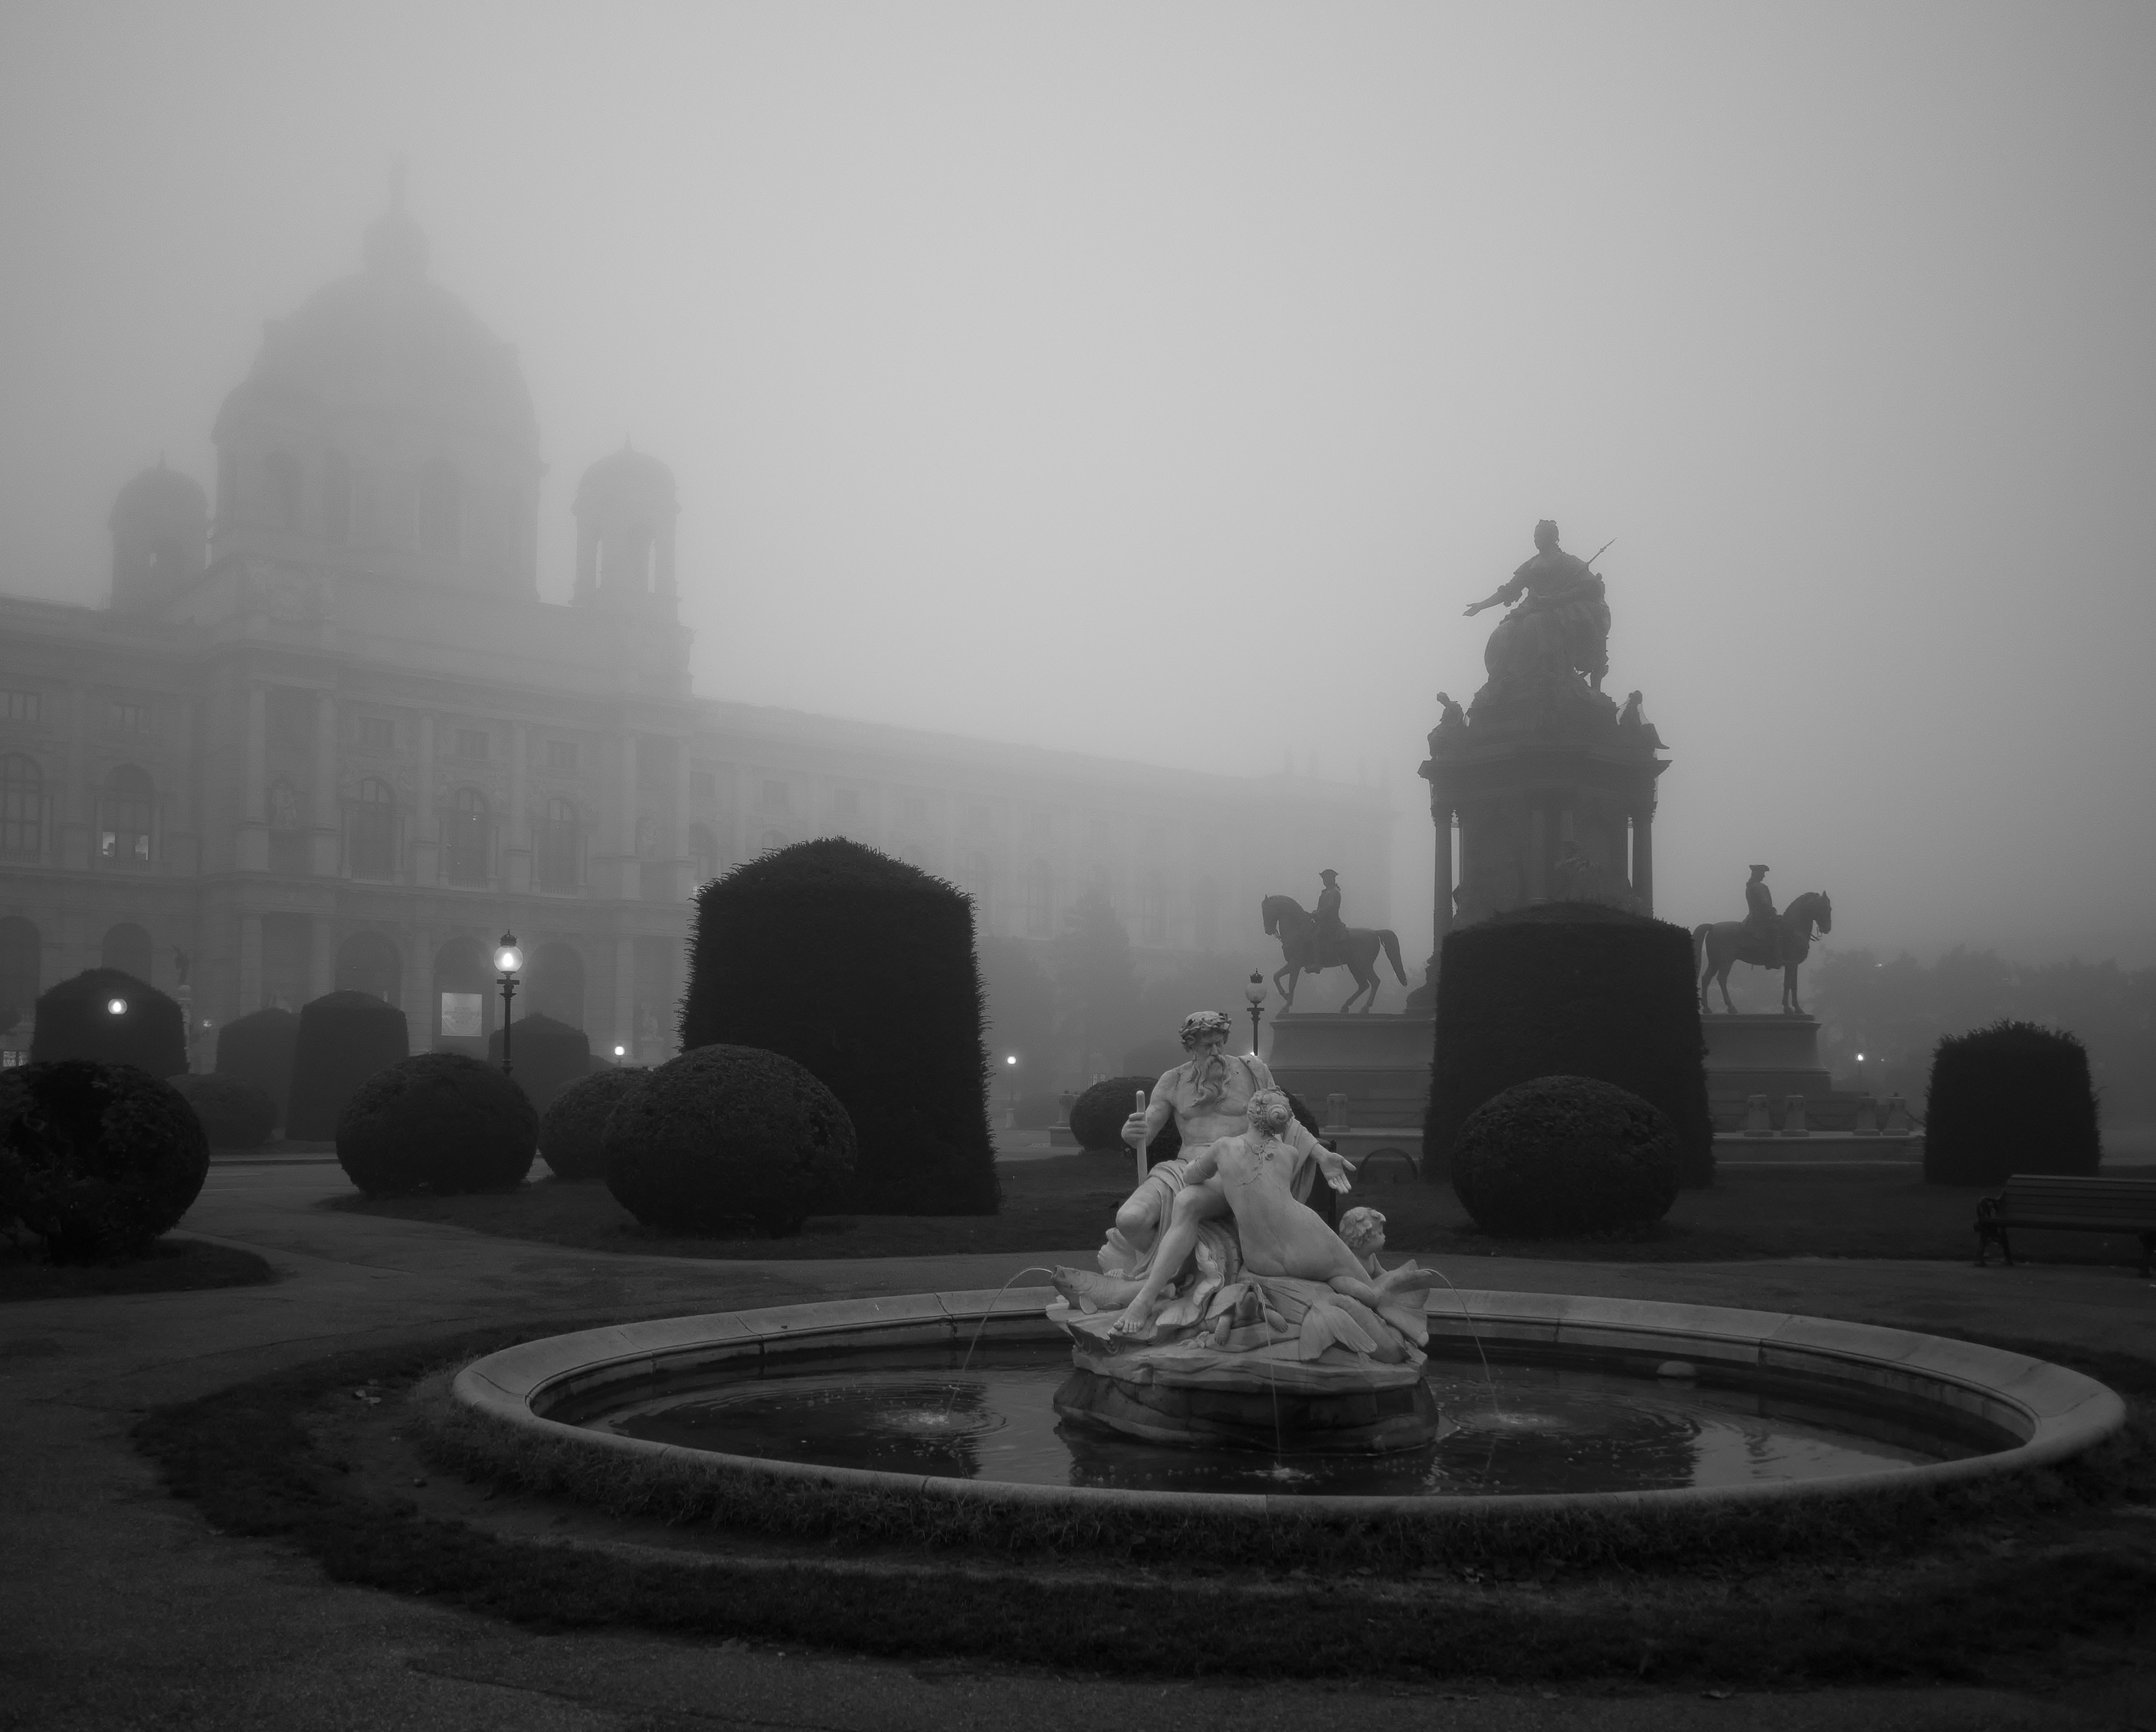 Two people statue over fog photo